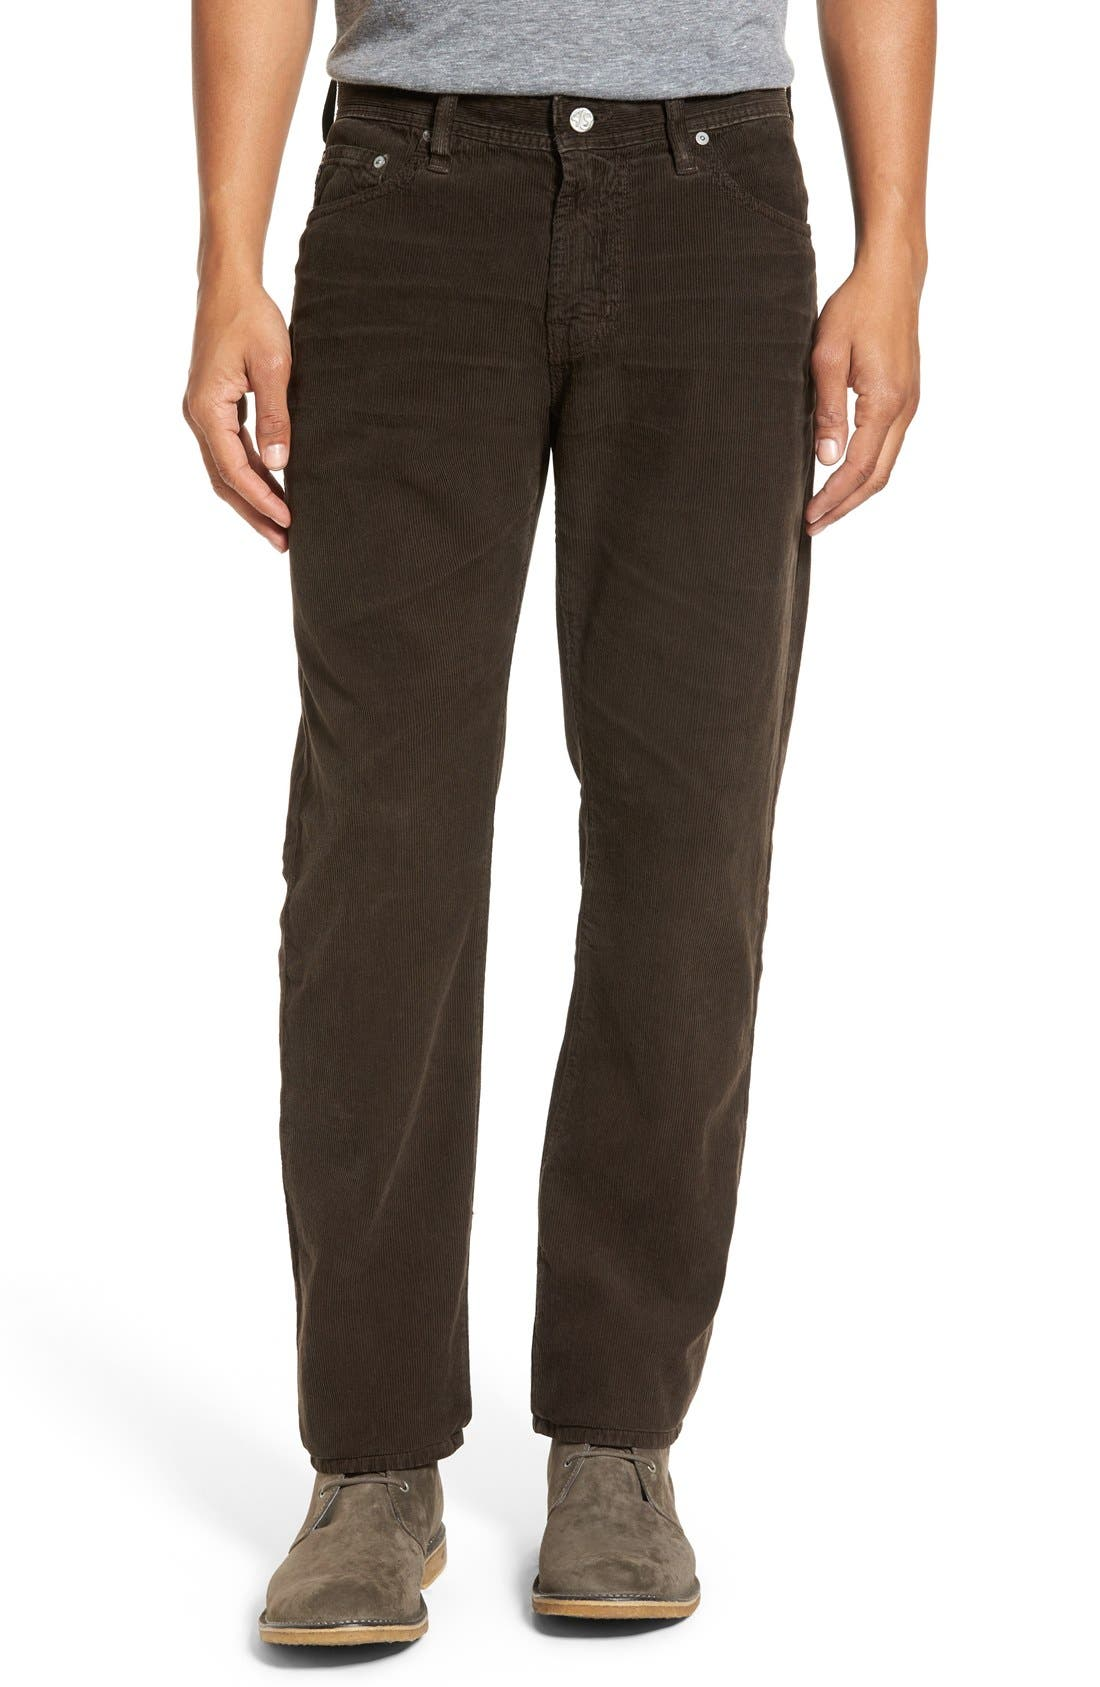 'Graduate' Tailored Straight Leg Corduroy Pants,                             Main thumbnail 8, color,